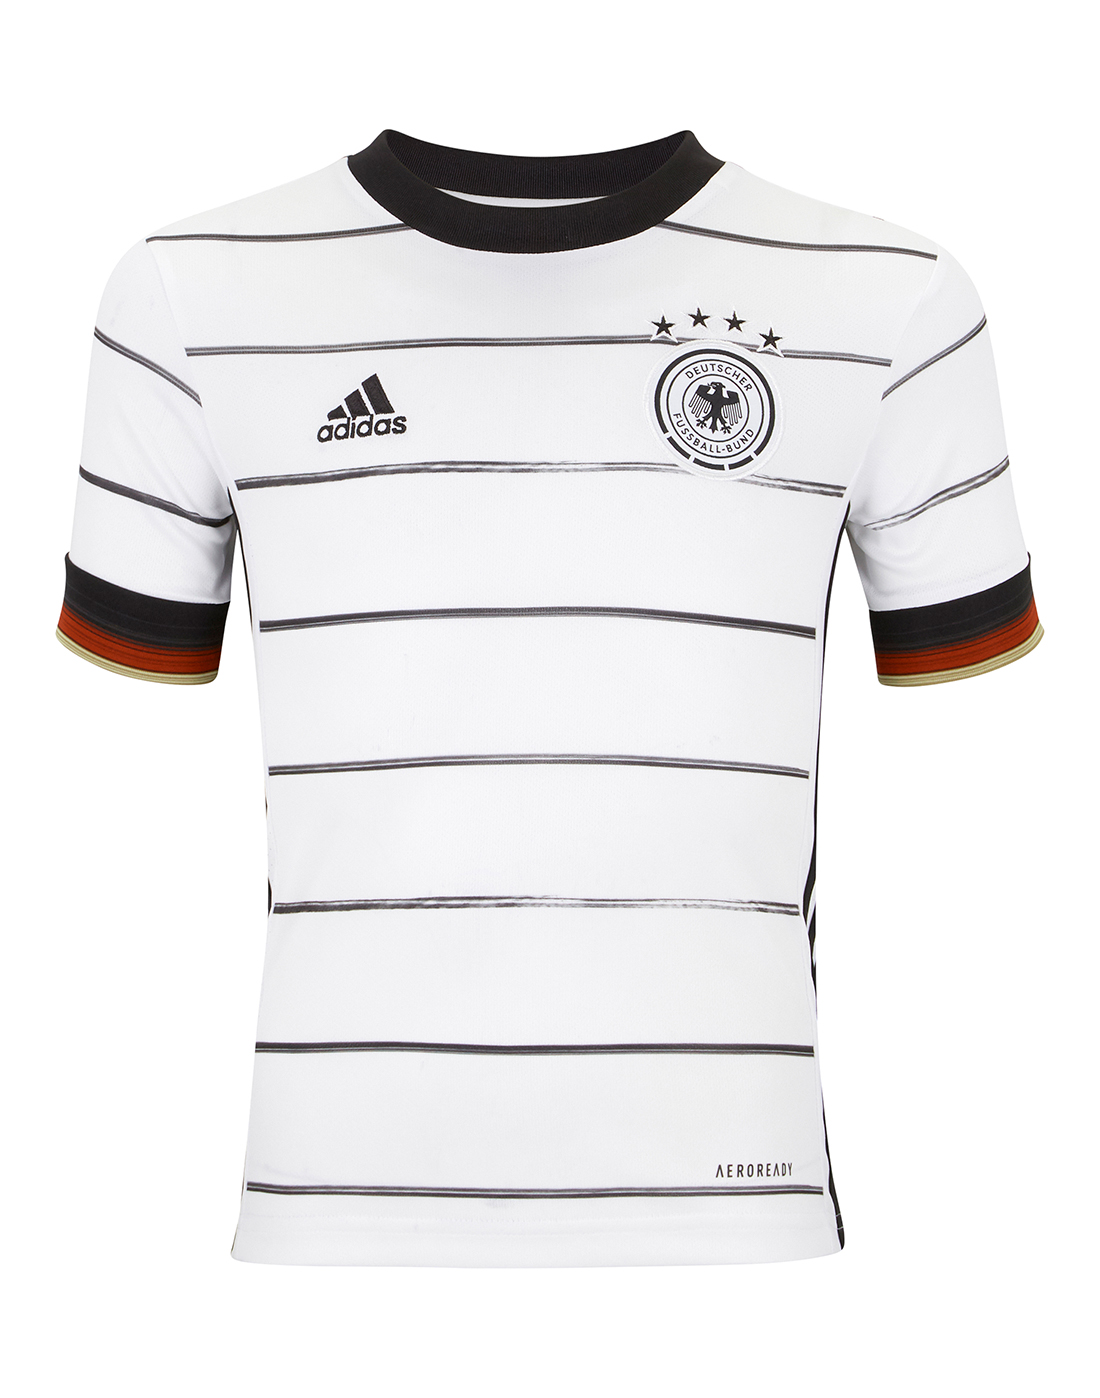 adidas Kids Germany Euro 2020 Home Jersey - White | Life Style ...